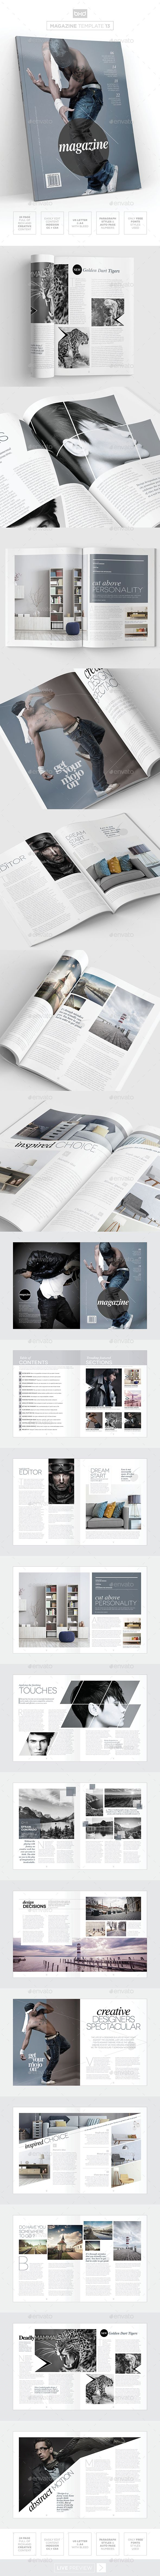 Magazine Template - InDesign 24 Page Layout V13 | Template, Print ...